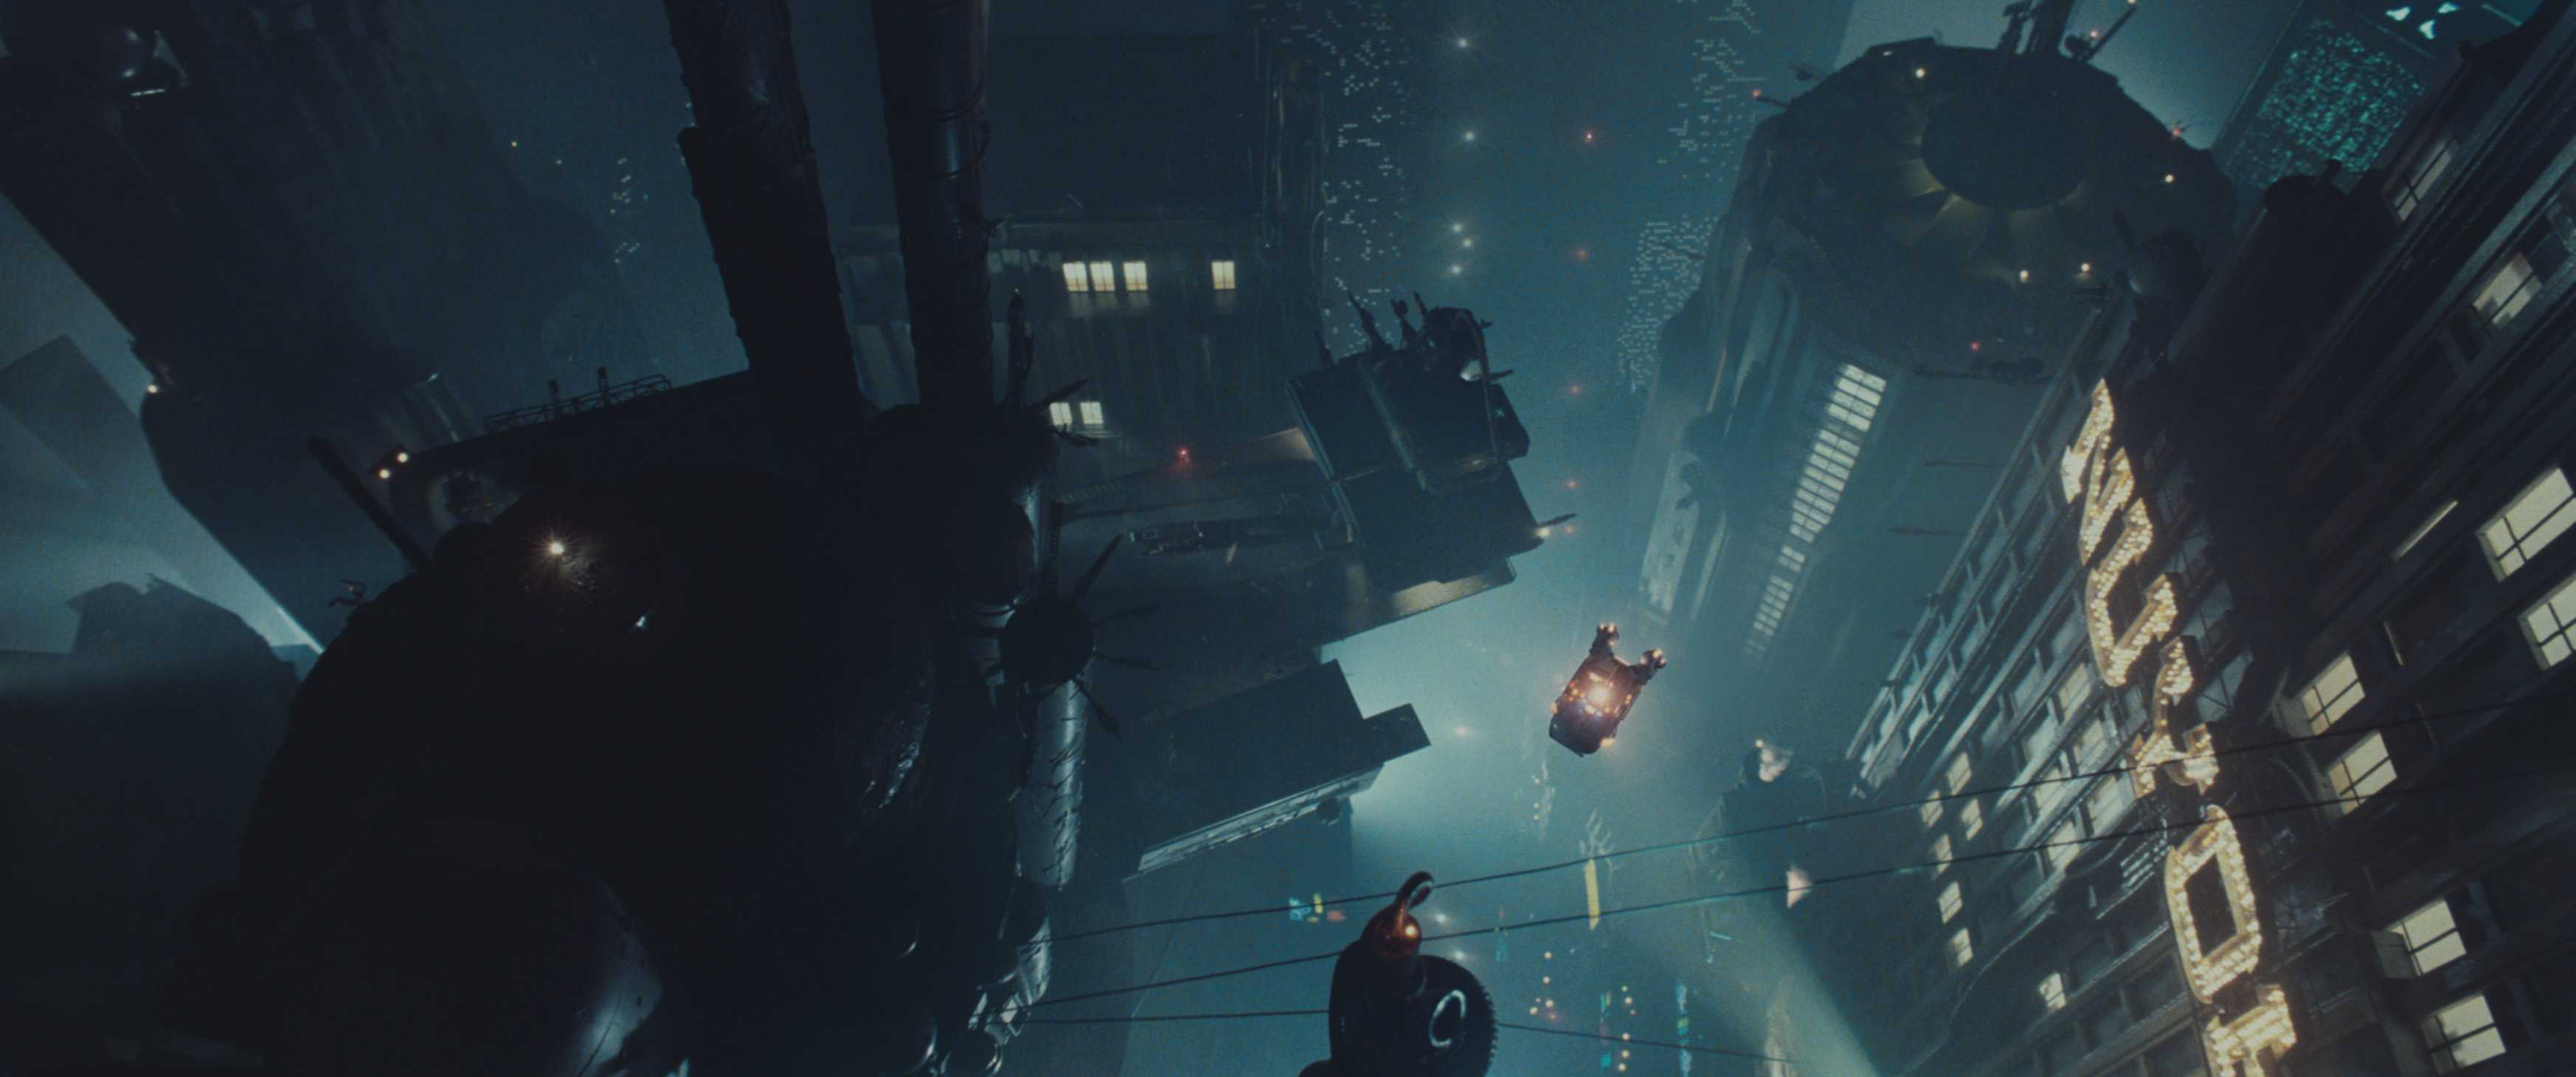 man playing god in blade runner A blade runner must pursue and try to terminate four replicants who stole a ship in space and have returned to earth to find their creator.